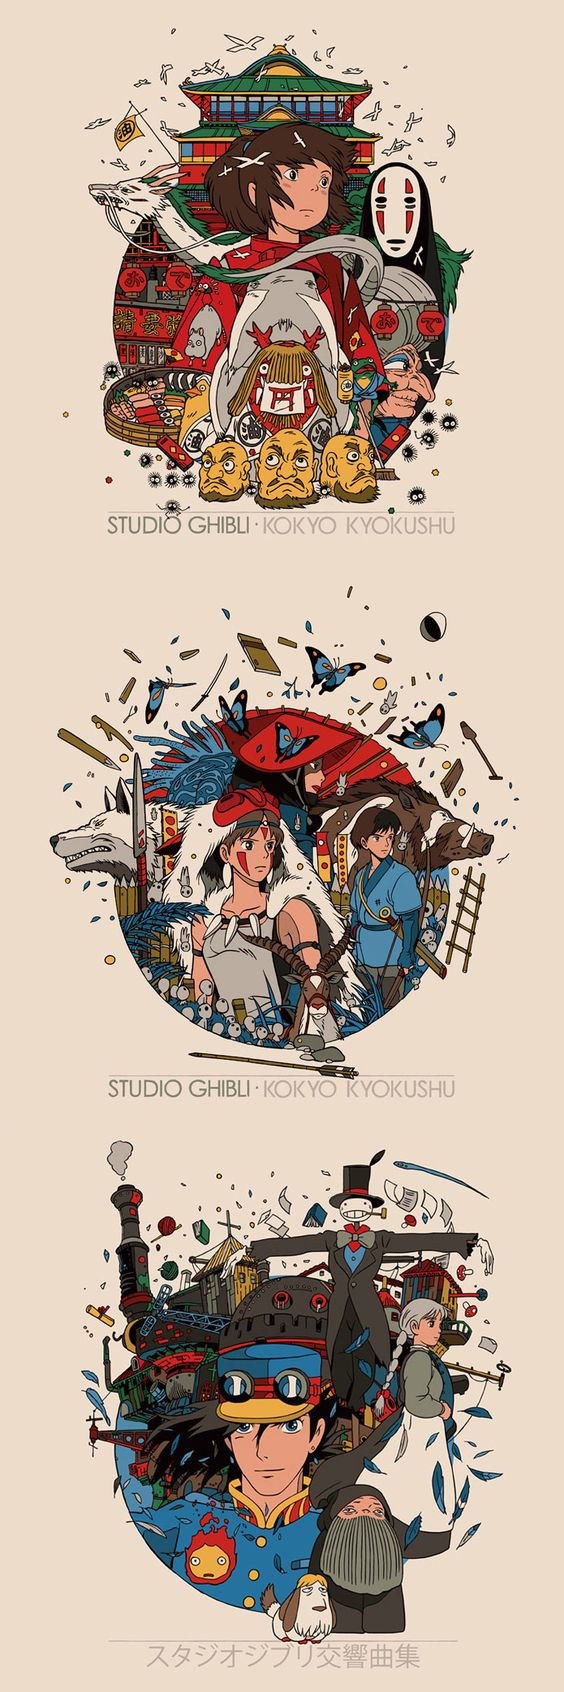 Studio Ghibli illustrations by Tyler Stout for Mondo vinyls and t-shirts.